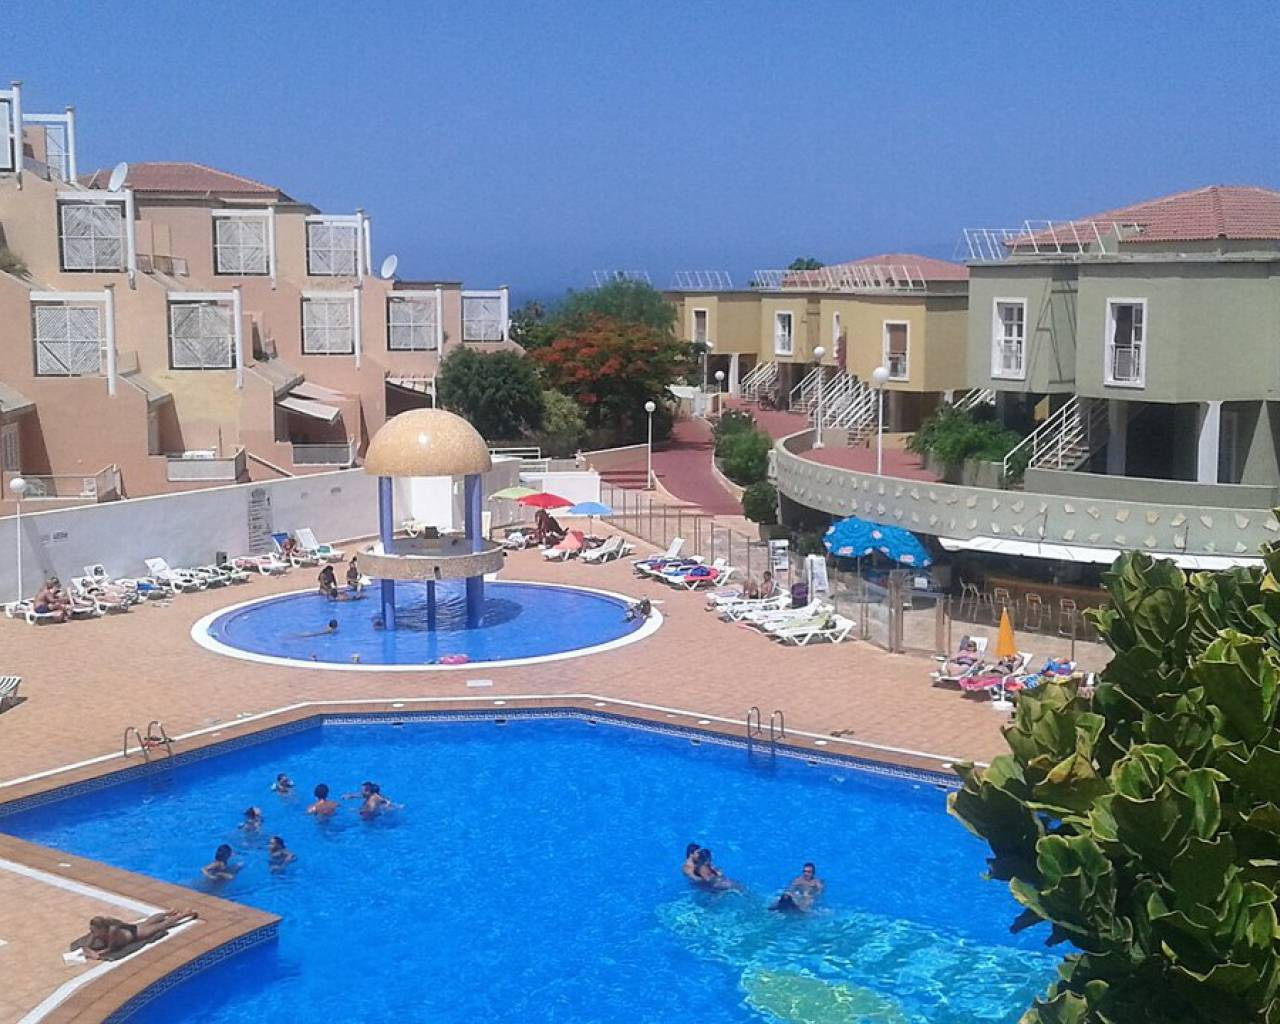 Apartment - Sale - Tenerife - Costa Adeje